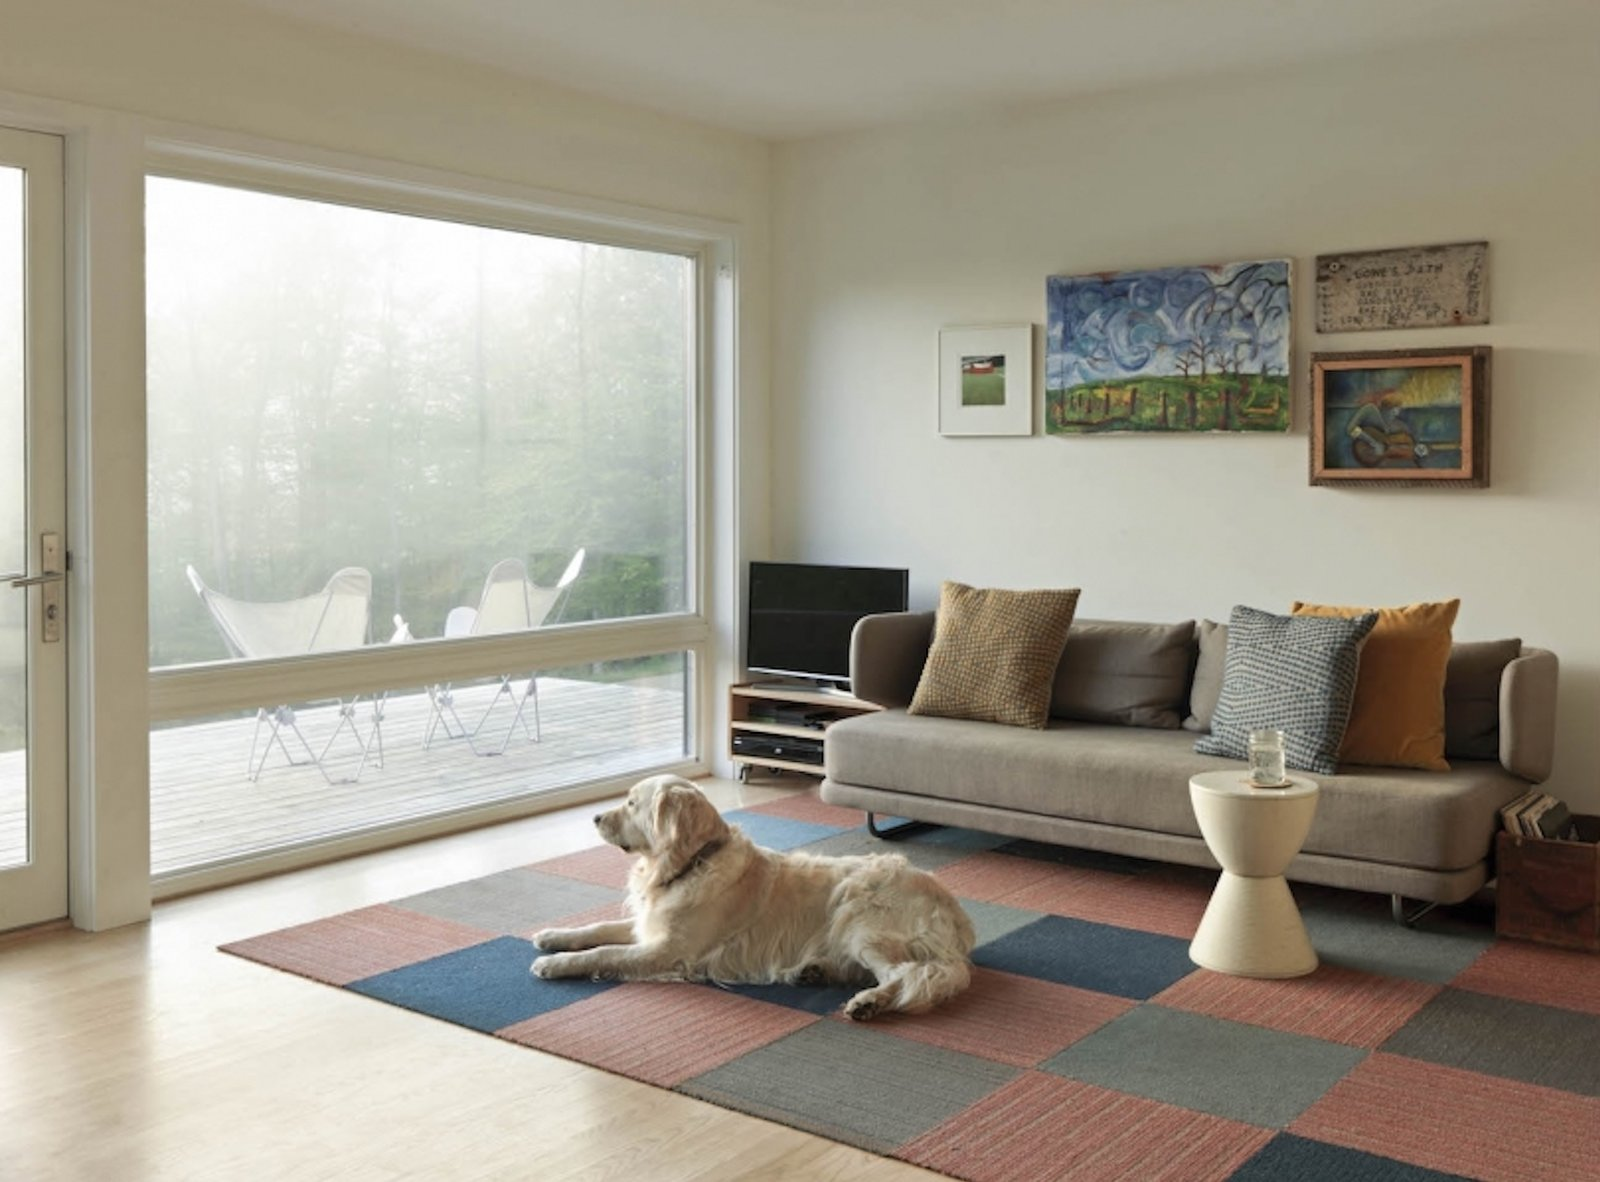 Living Room, Sofa, Console Tables, End Tables, Light Hardwood Floor, Stools, Rug Floor, and Media Cabinet  Photo 2 of 13 in A Little Black Cabin Keeps Things Simple for a Family of Four in Vermont